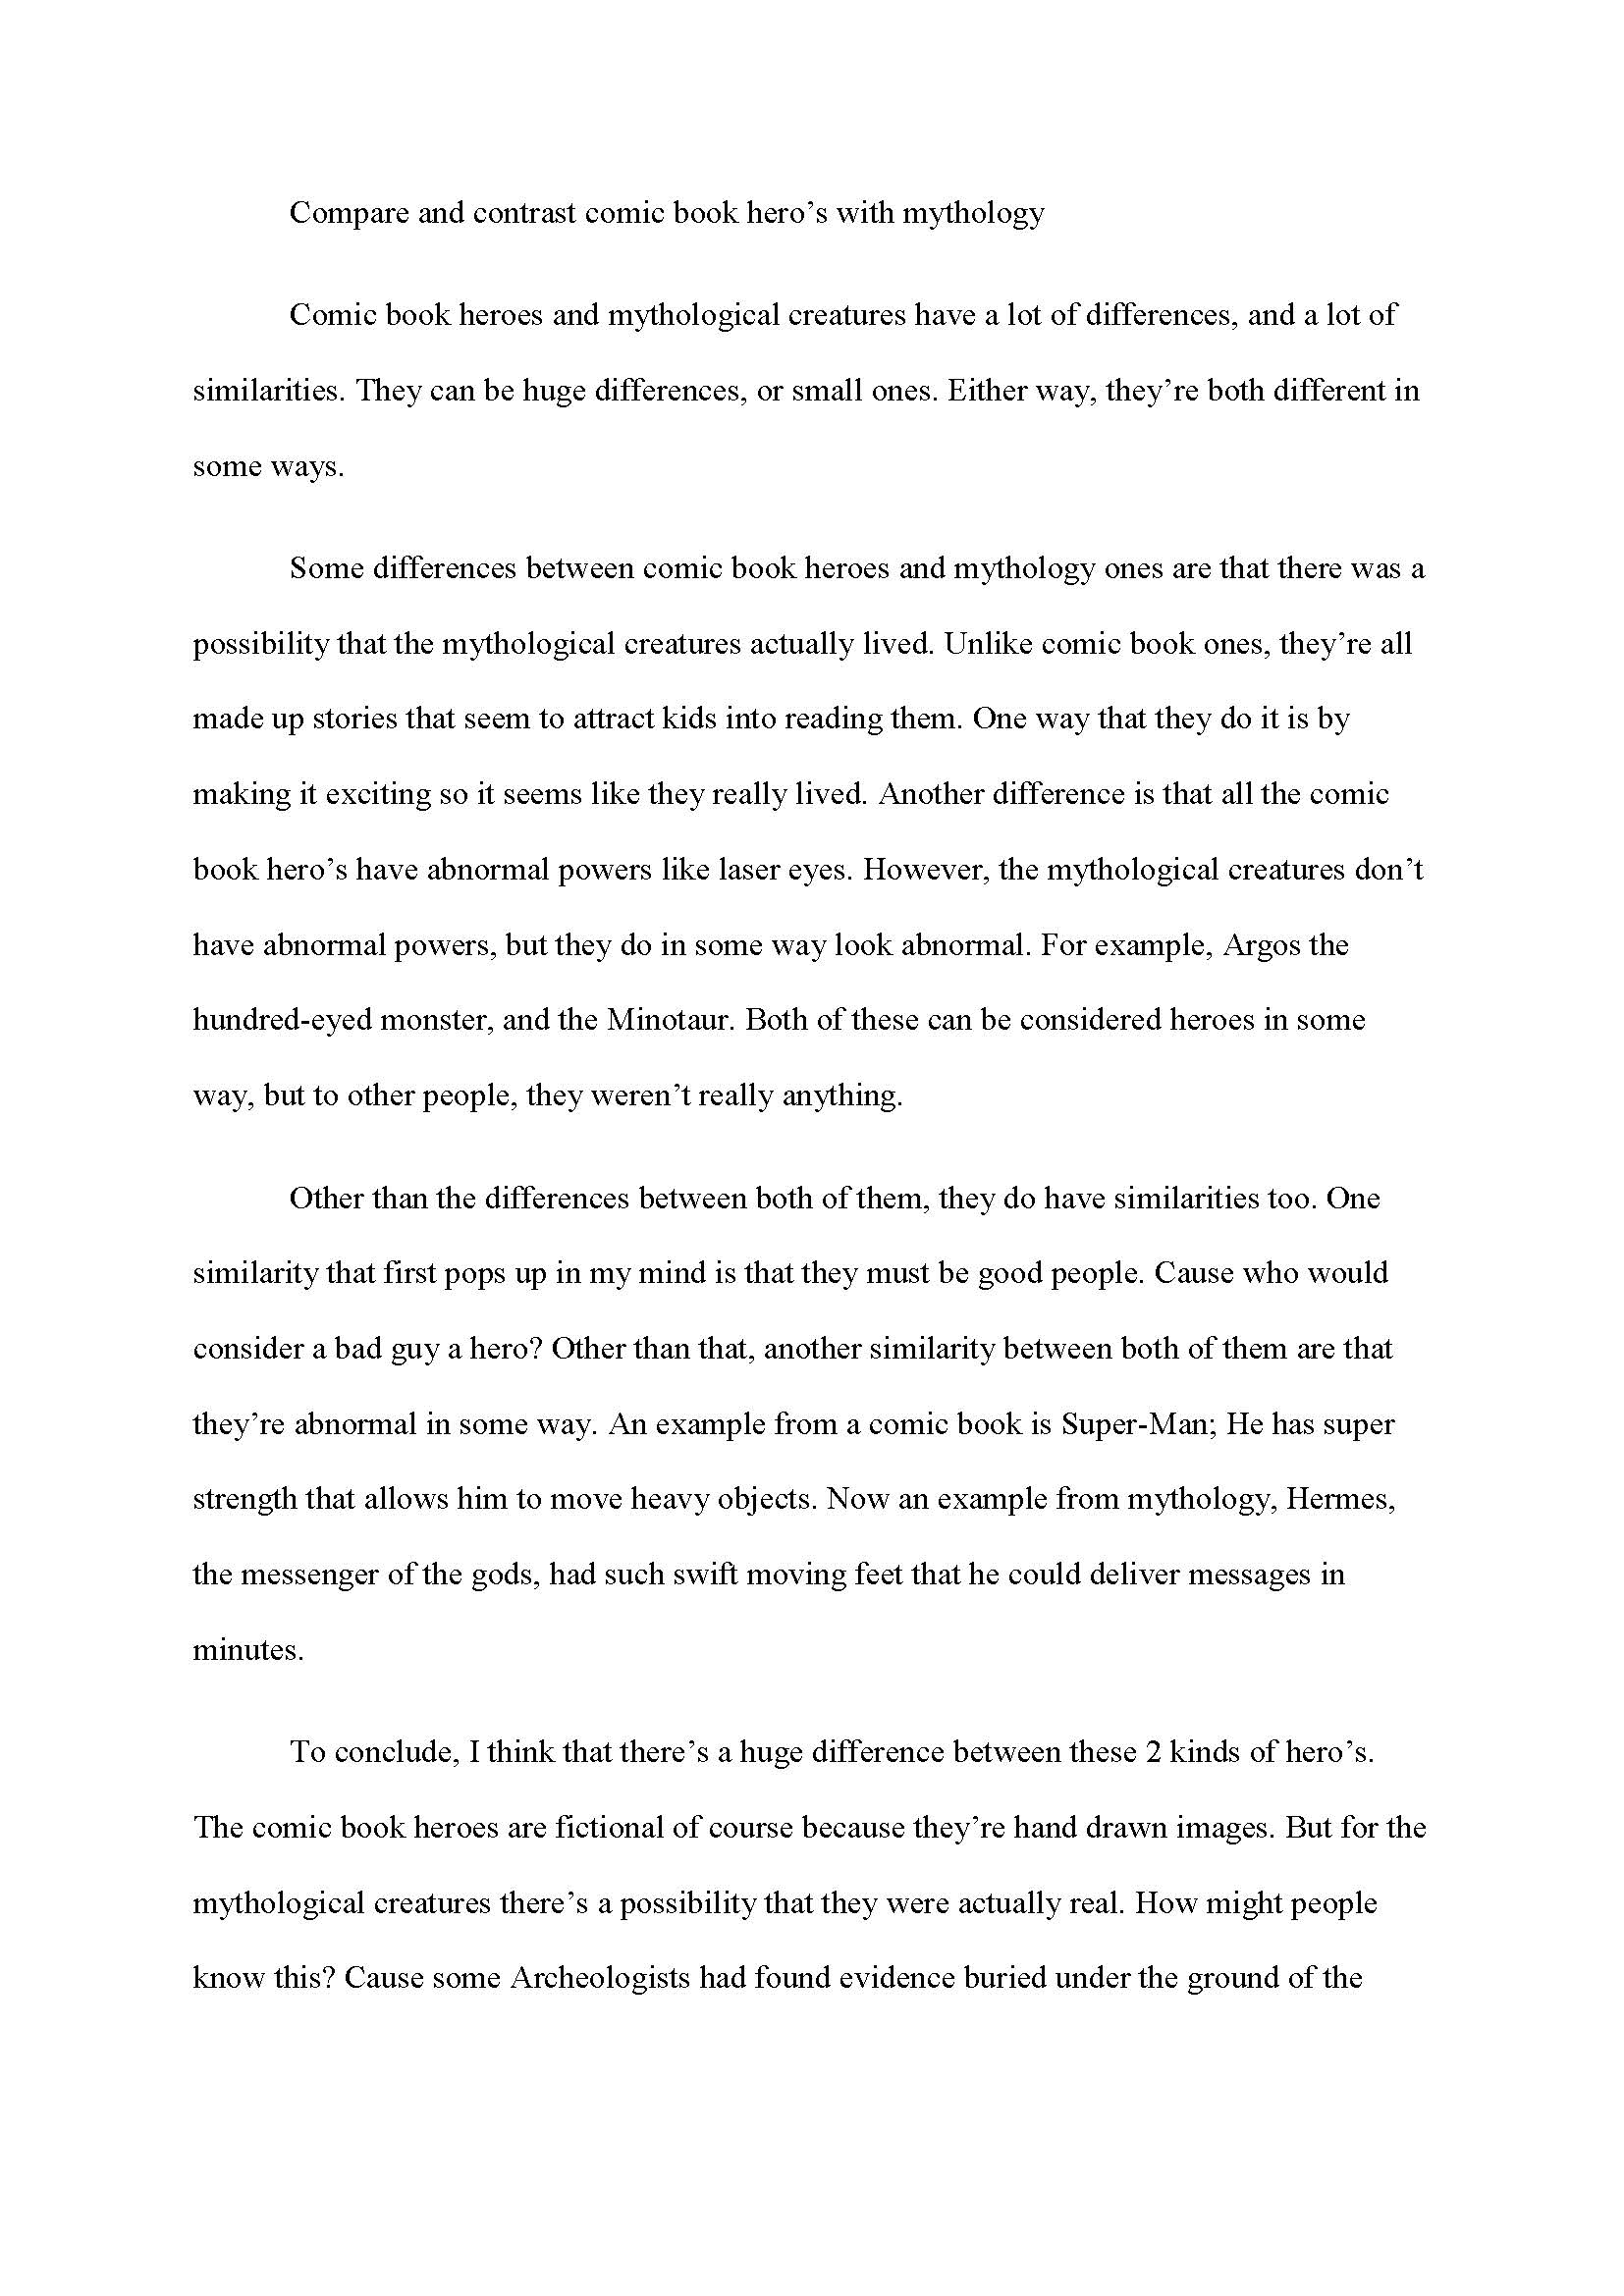 014 Essay Topics For Life Of Pi Compare And Contrast Sample Incredible Research Paper Prompts Writing Full